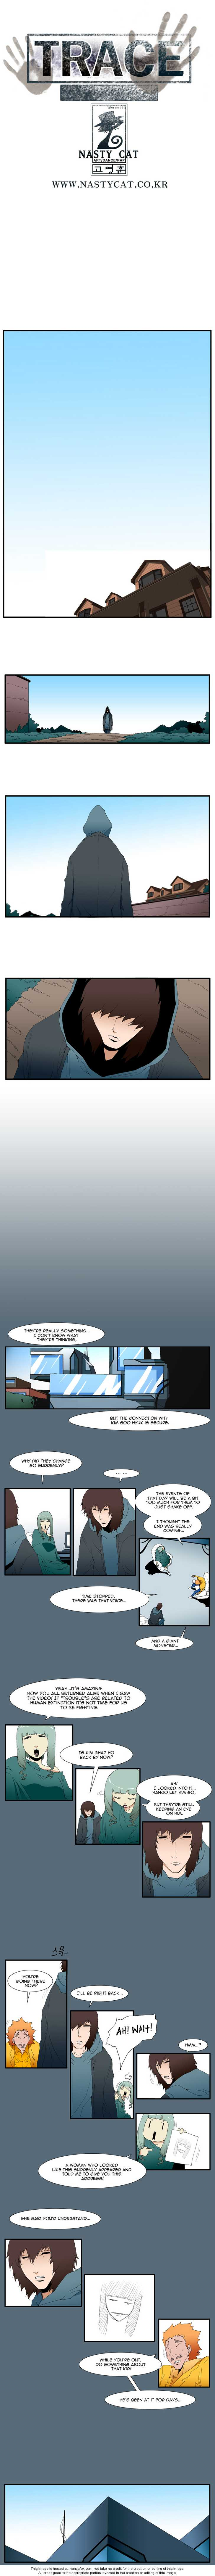 Trace 3 Page 1